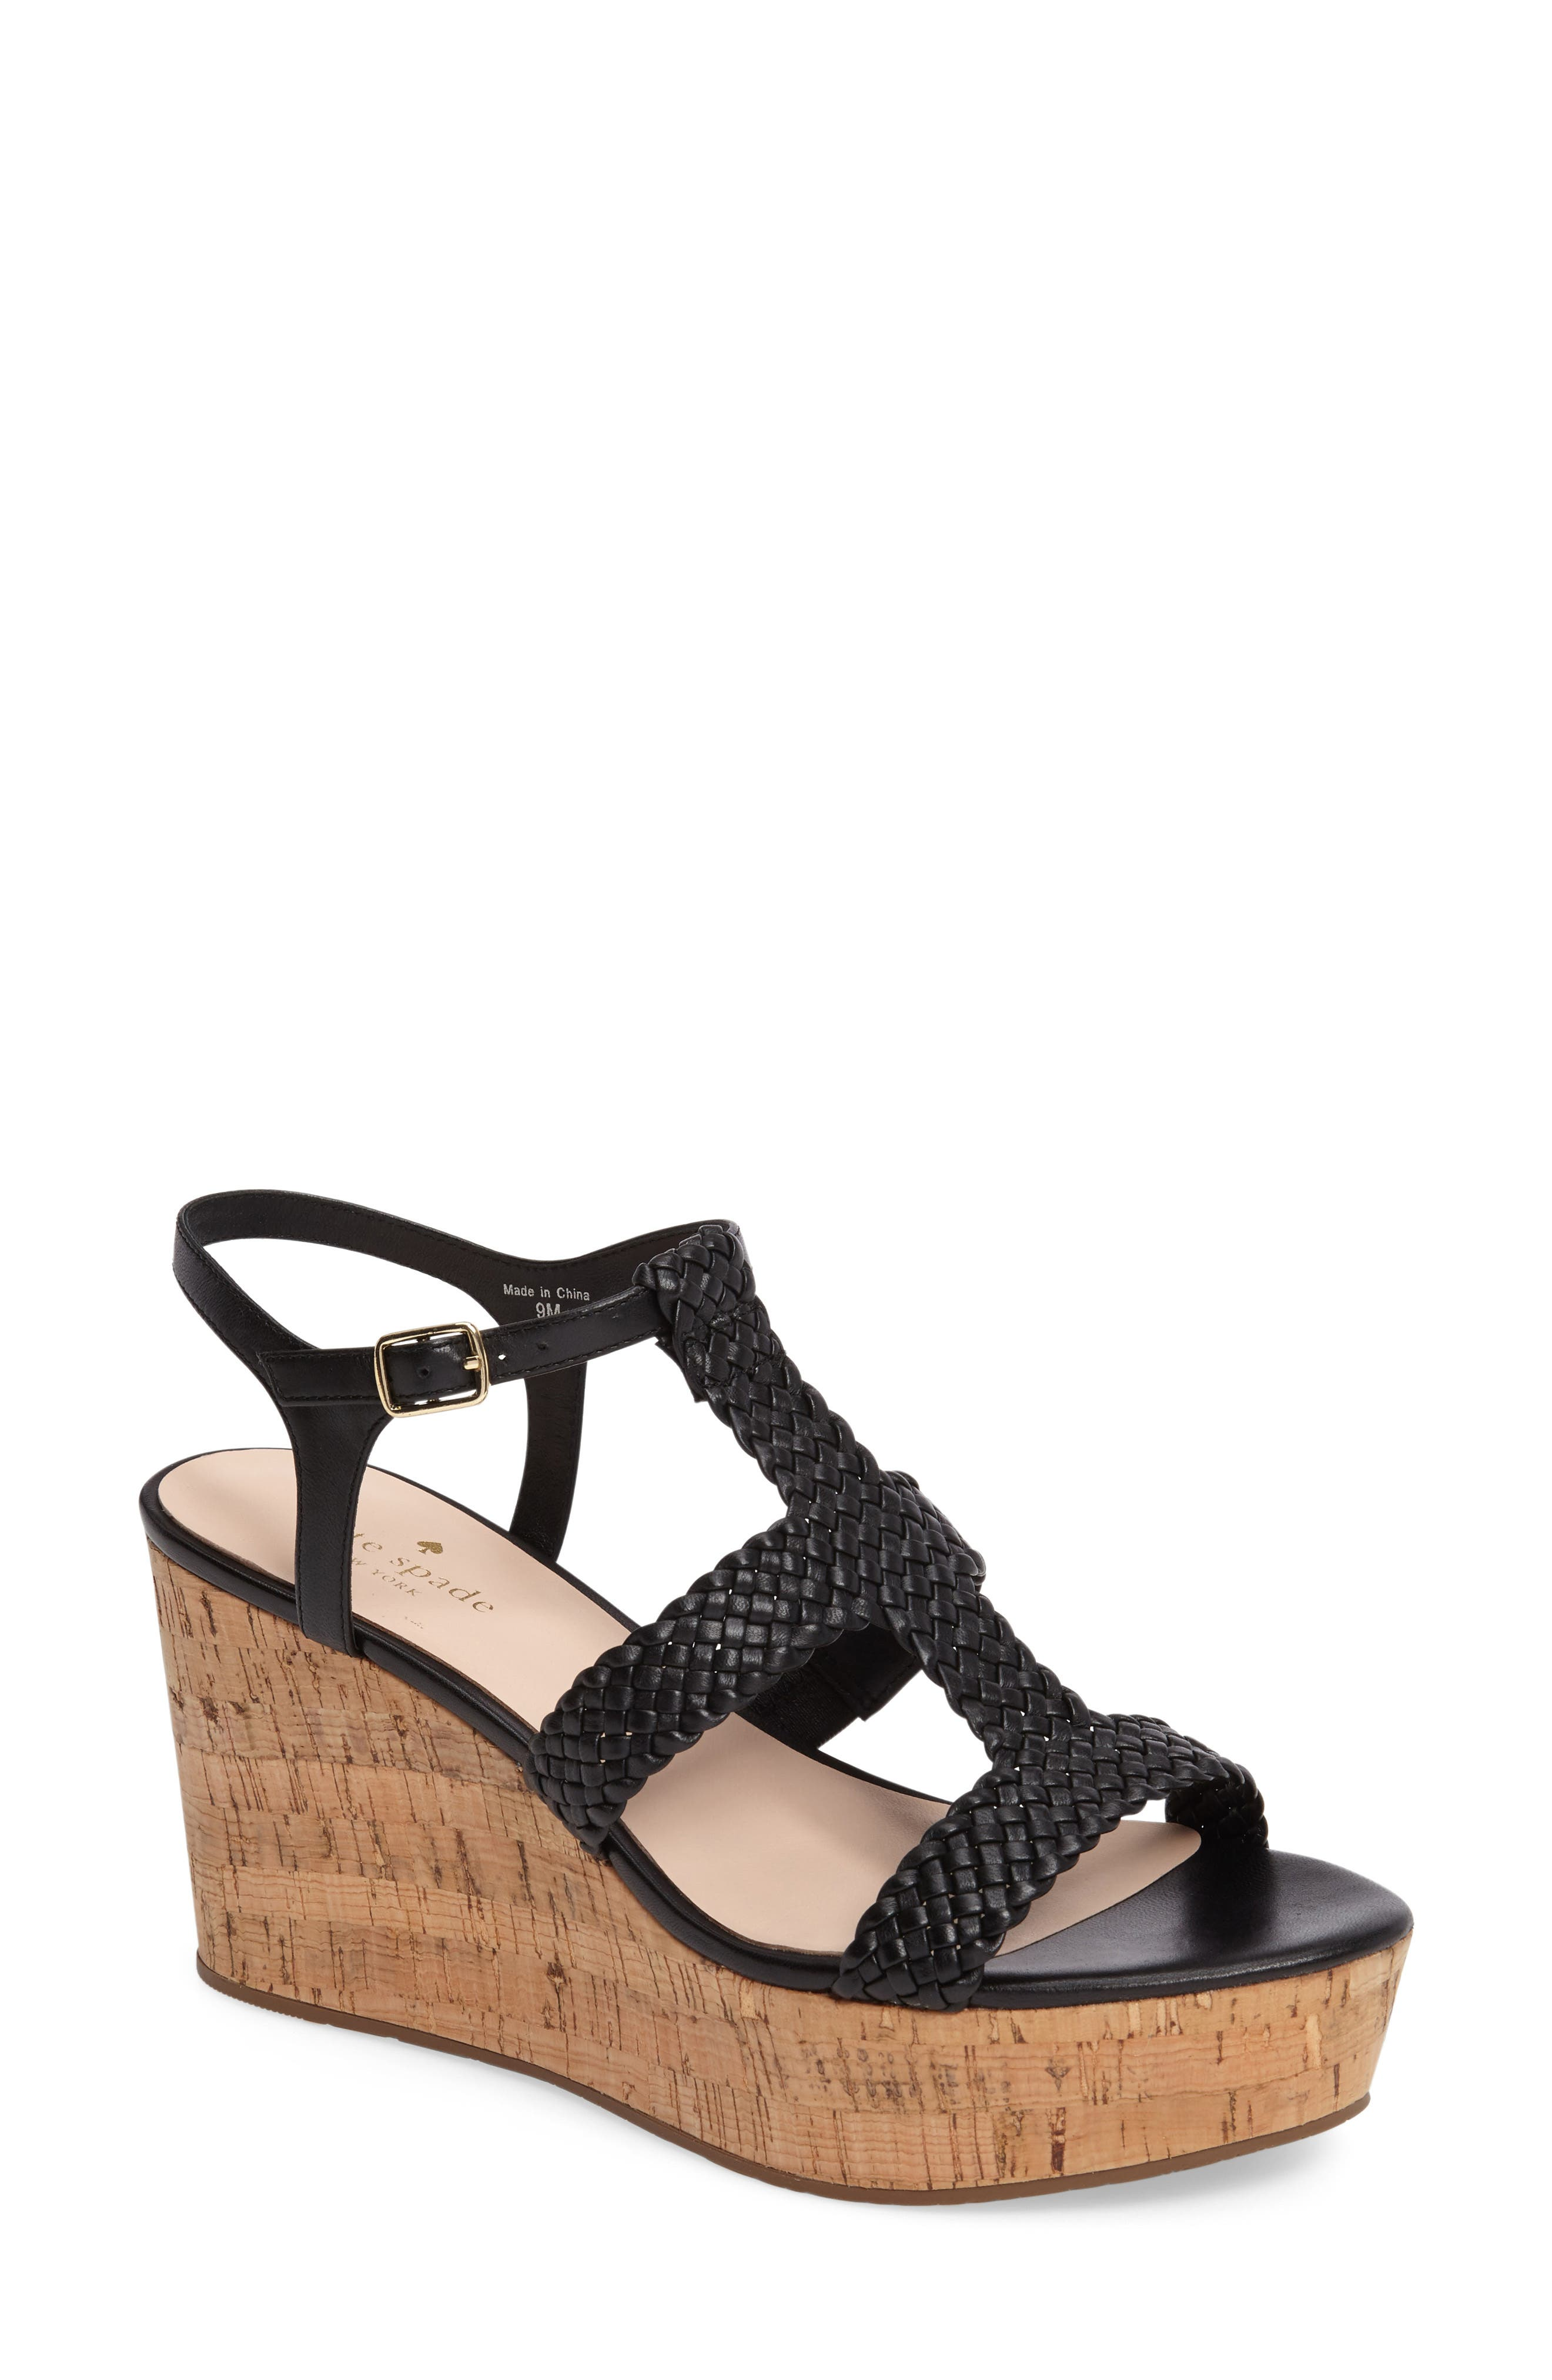 KATE SPADE NEW YORK tianna platform sandal, Main, color, 001